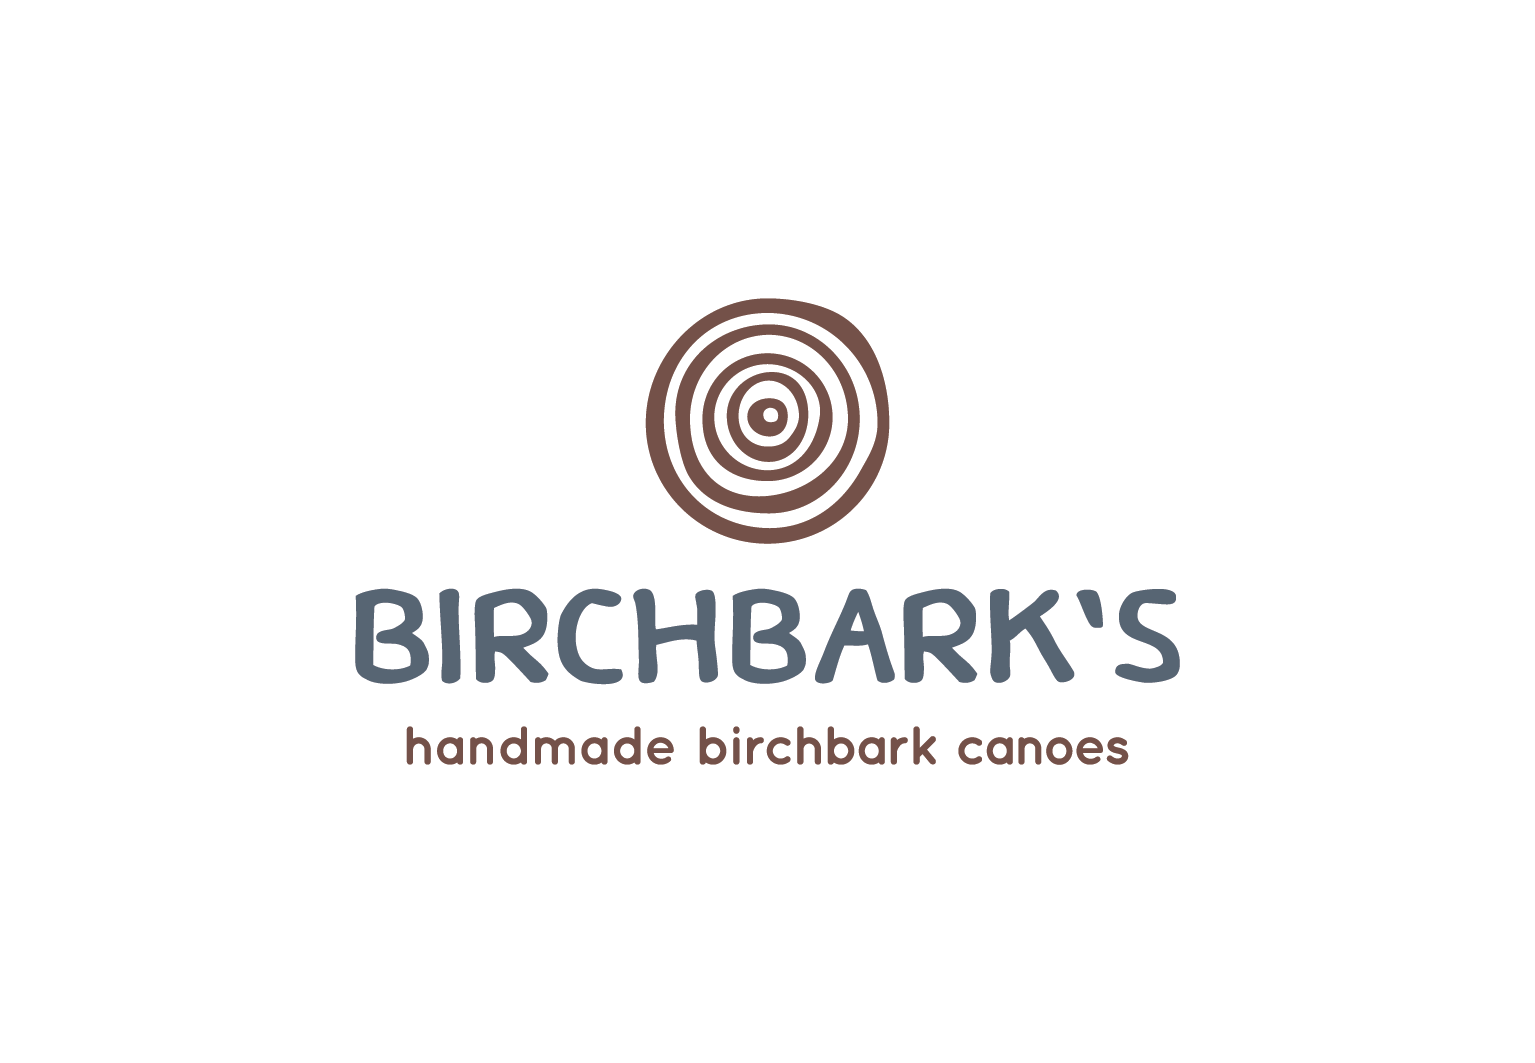 Corporate Design Birchbark's